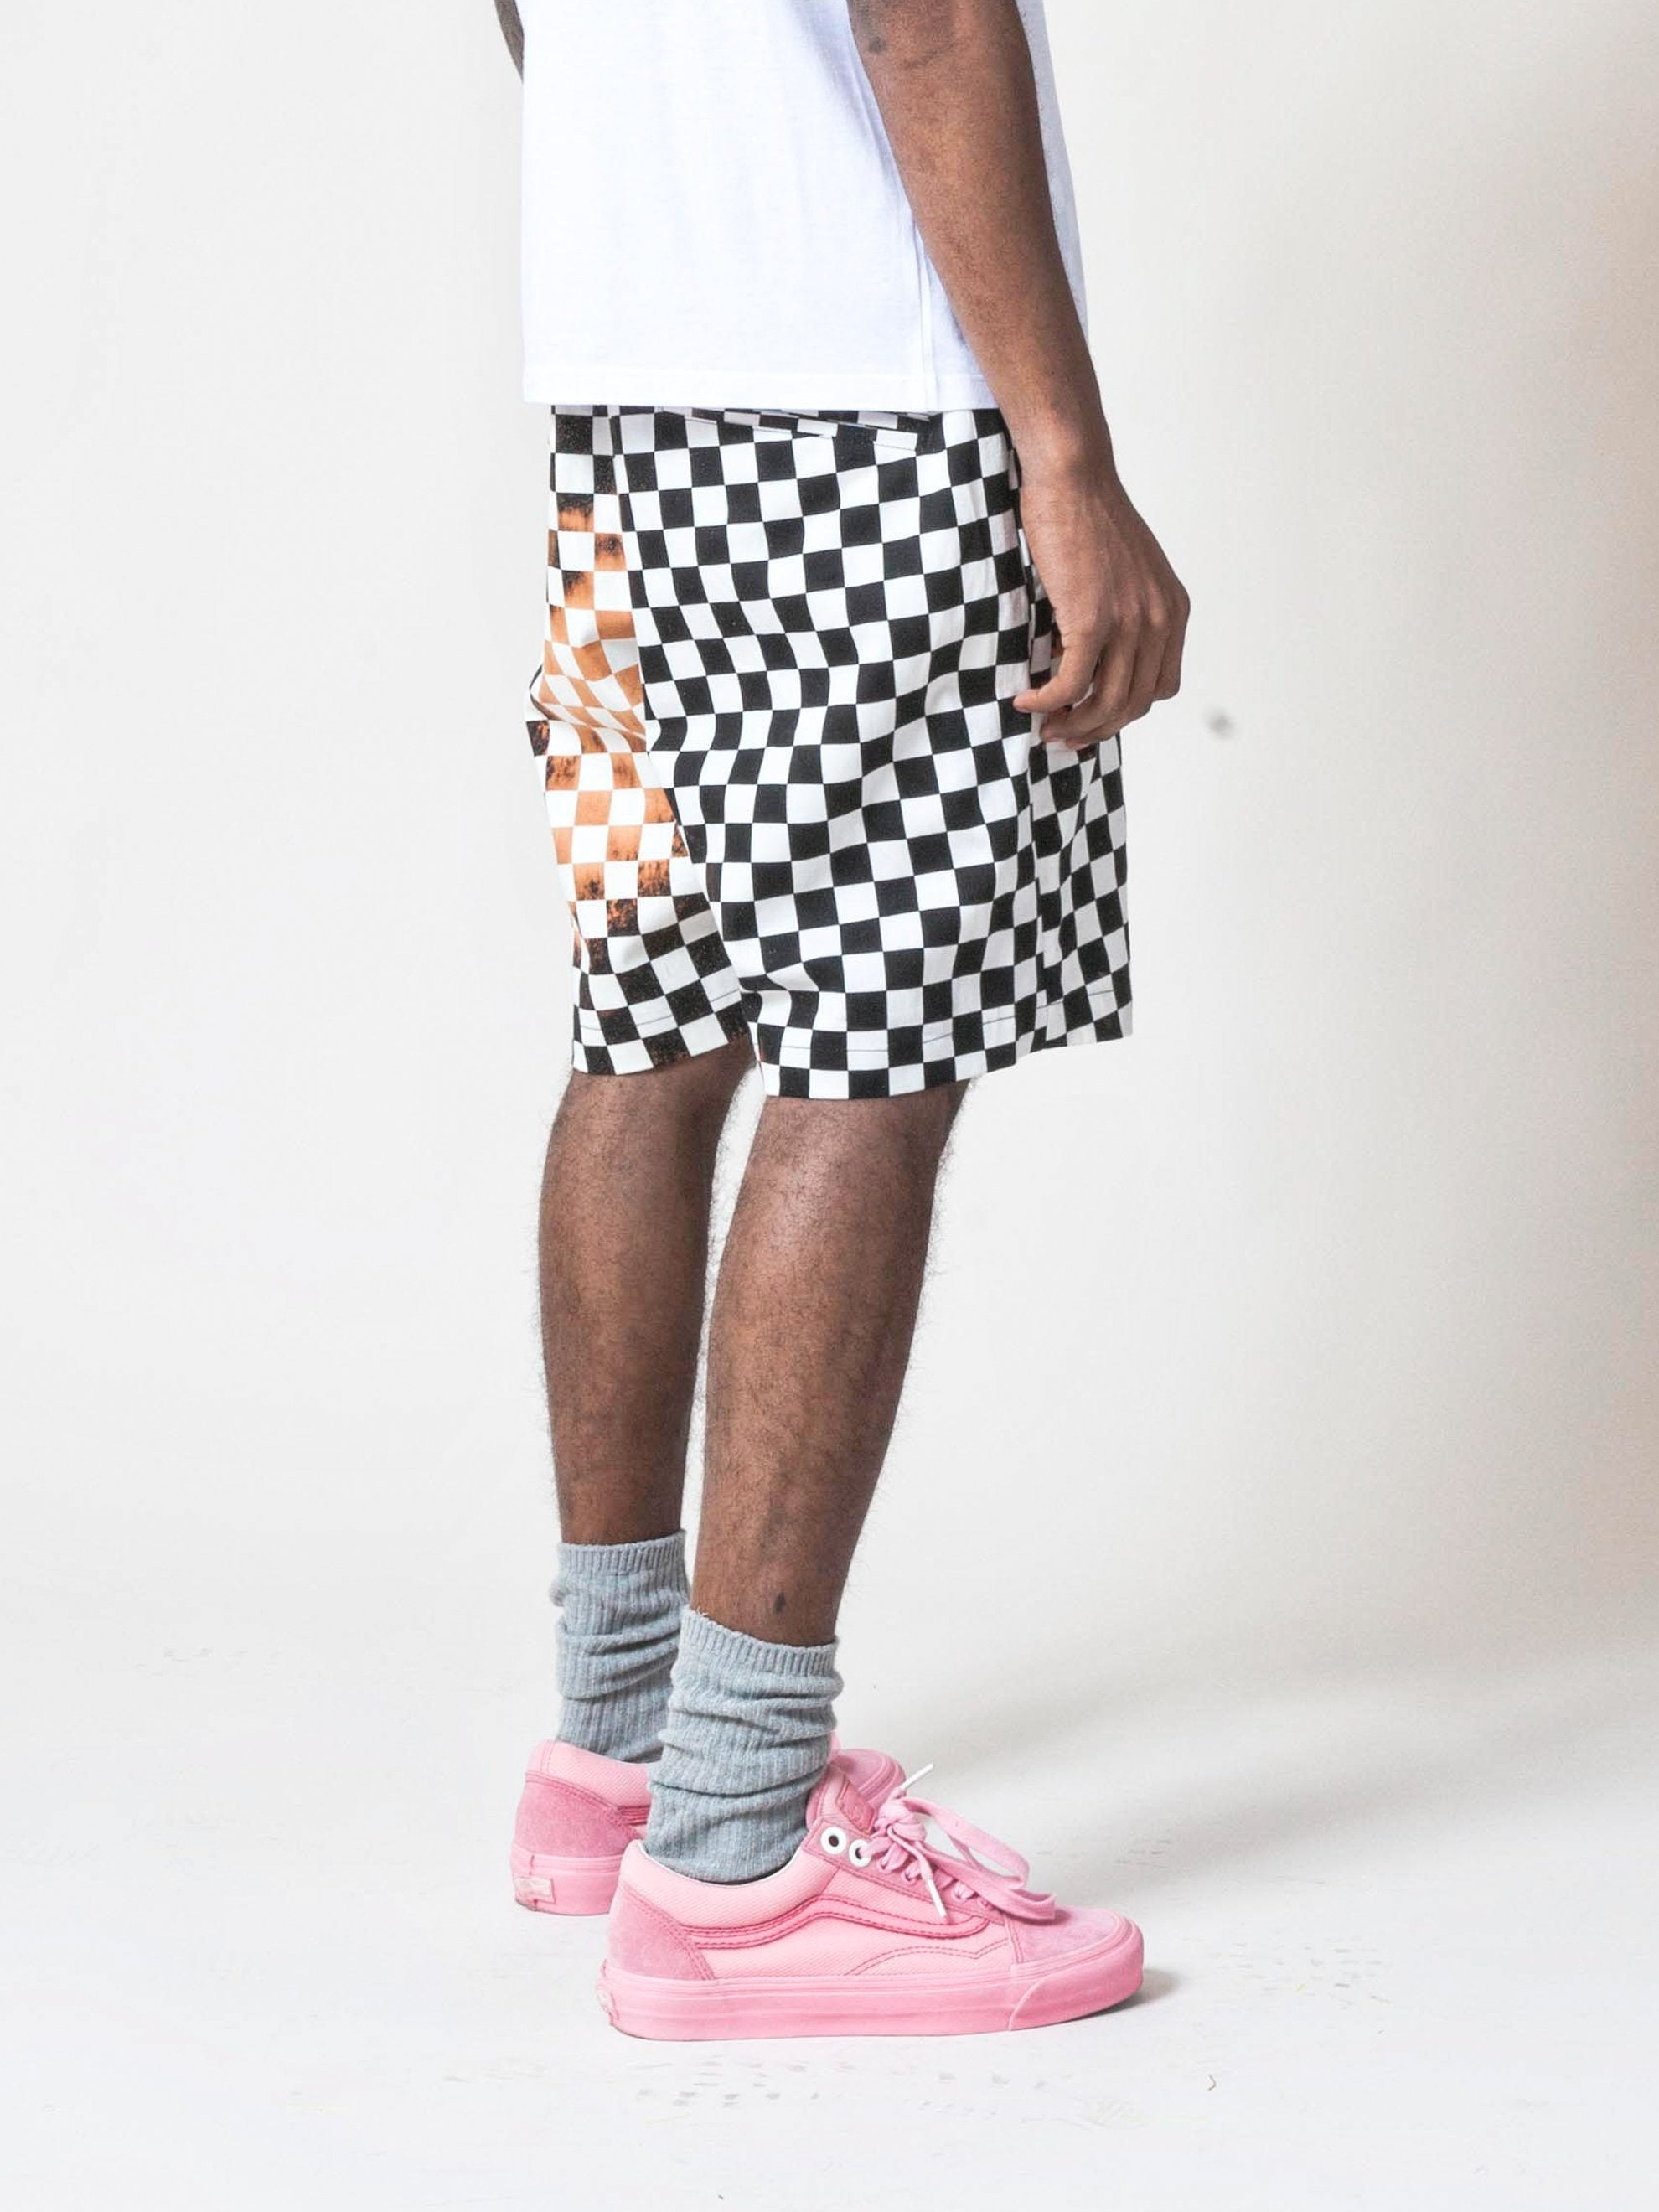 Red Checkerboard/Black Checkerboard Embroidered Printed Shorts 5